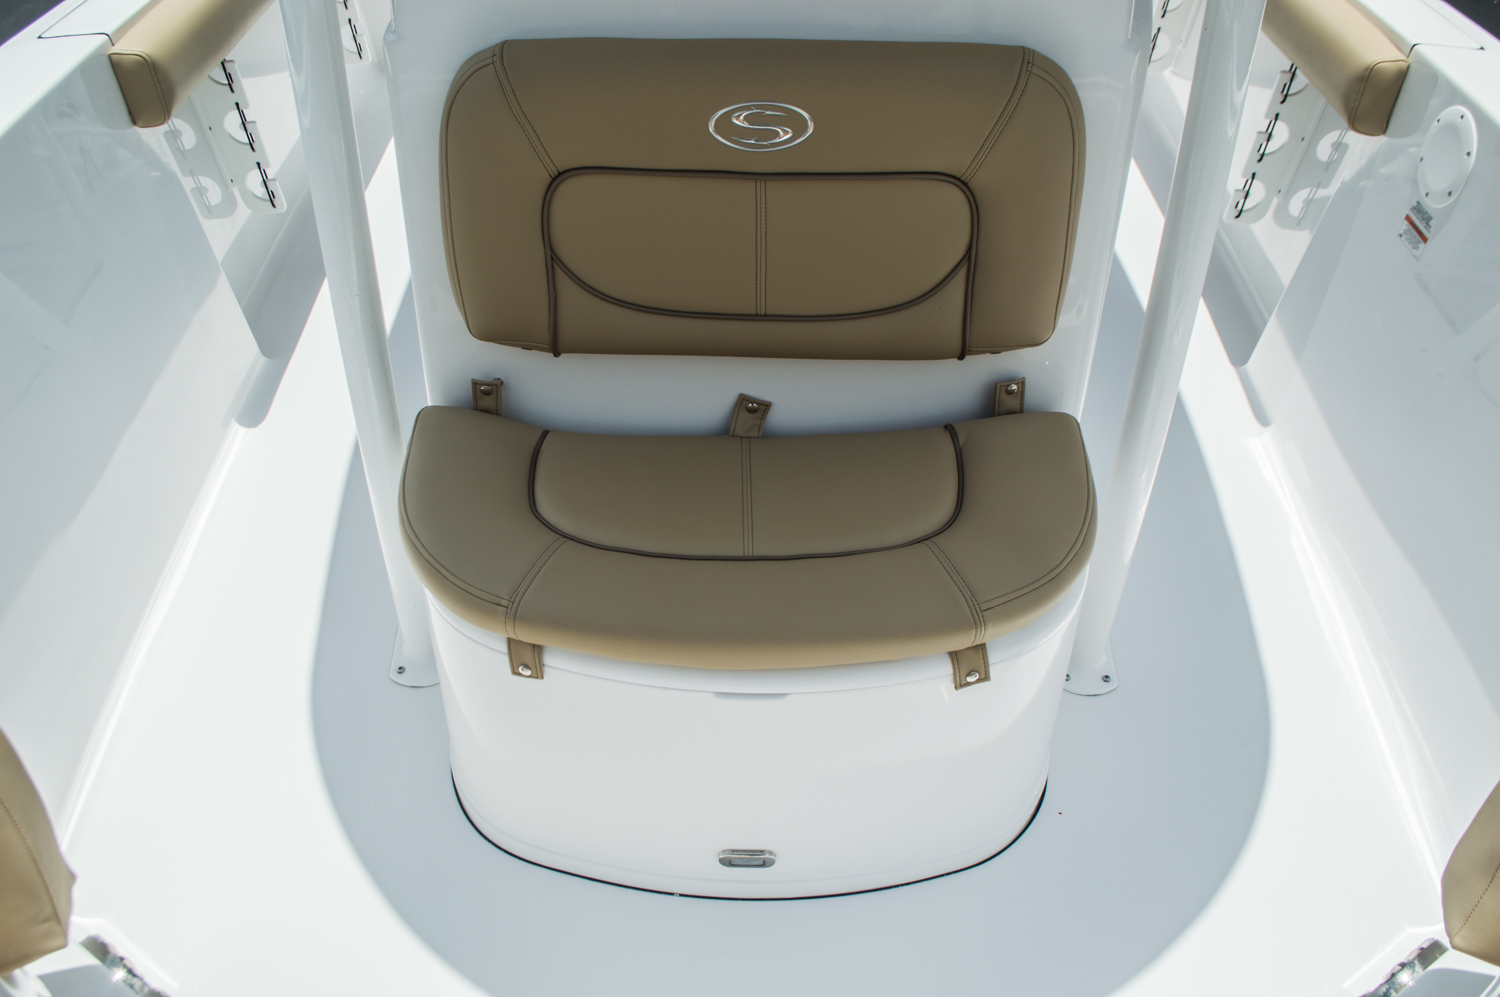 Thumbnail 20 for New 2016 Sportsman Heritage 231 Center Console boat for sale in West Palm Beach, FL